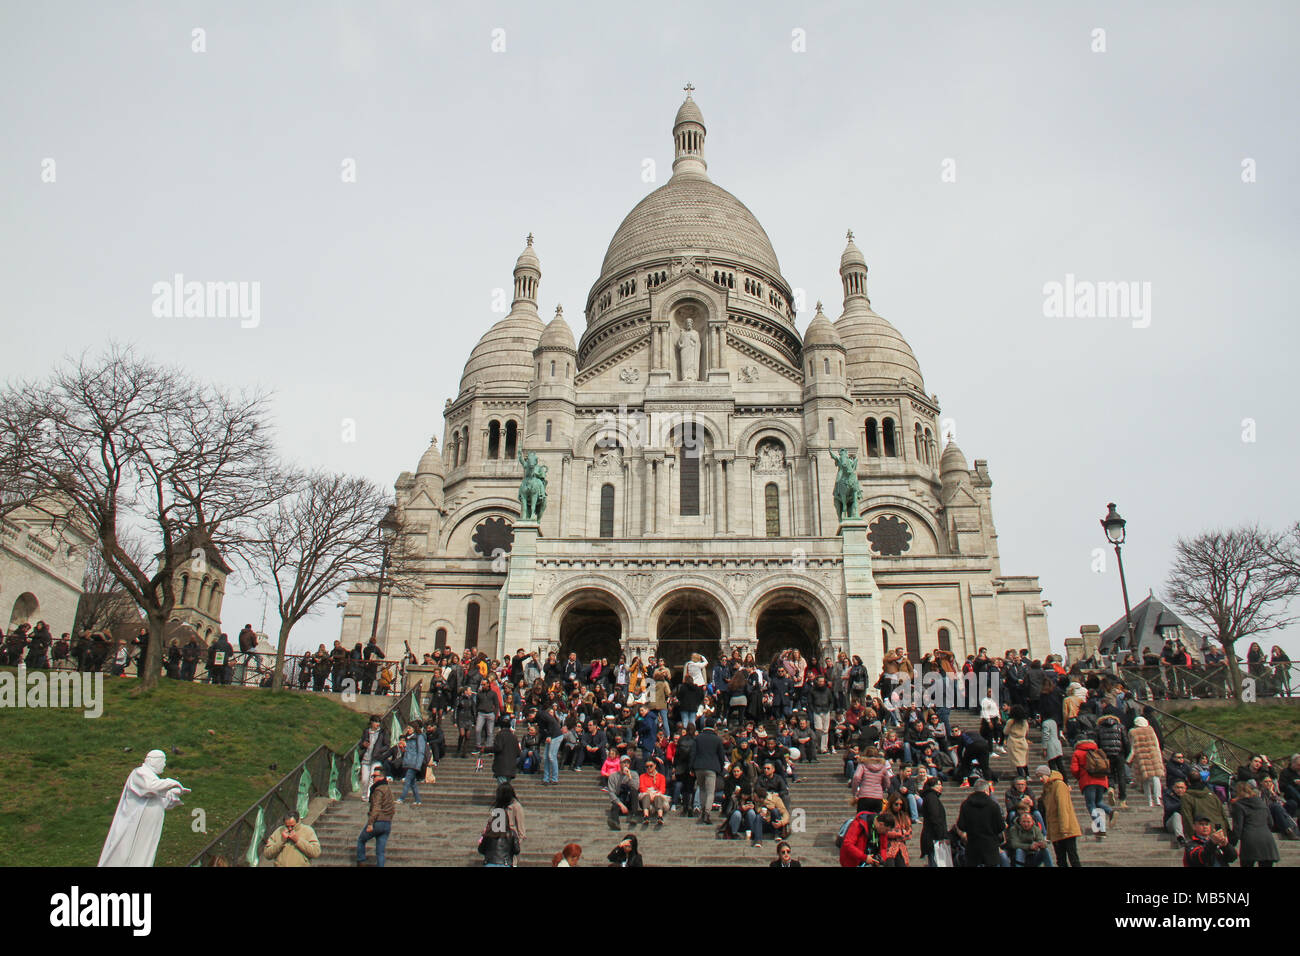 Paris, France -  02 April, 2018. Tourists seen by the Sacre Coeur Cathedral in north Paris on 02 April 2018 over the Ester weekend. General view of Paris, France. @ David Mbiyu/Alamy Live News - Stock Image